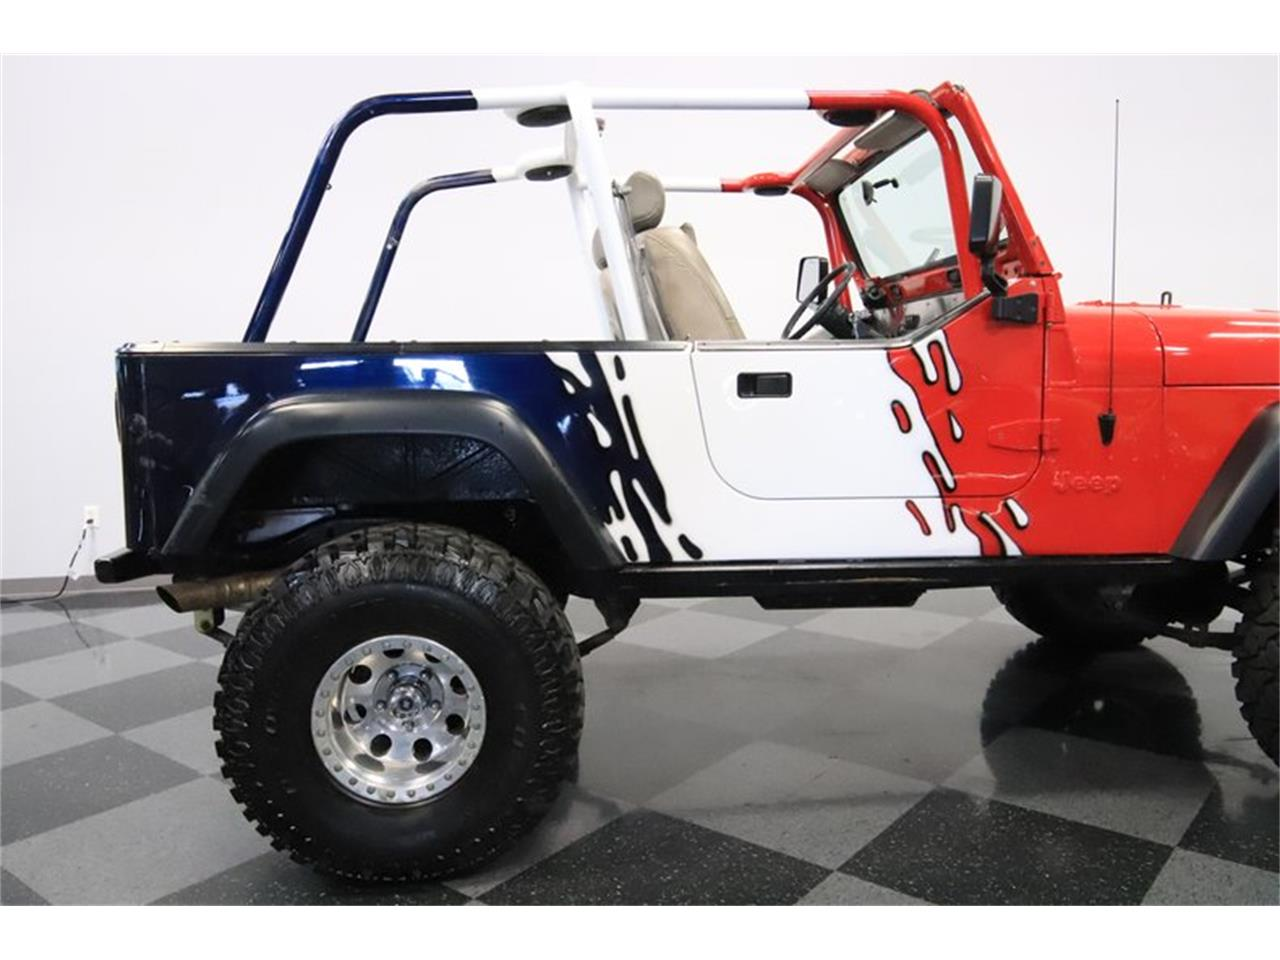 1983 Jeep CJ8 Scrambler for sale in Mesa, AZ – photo 34